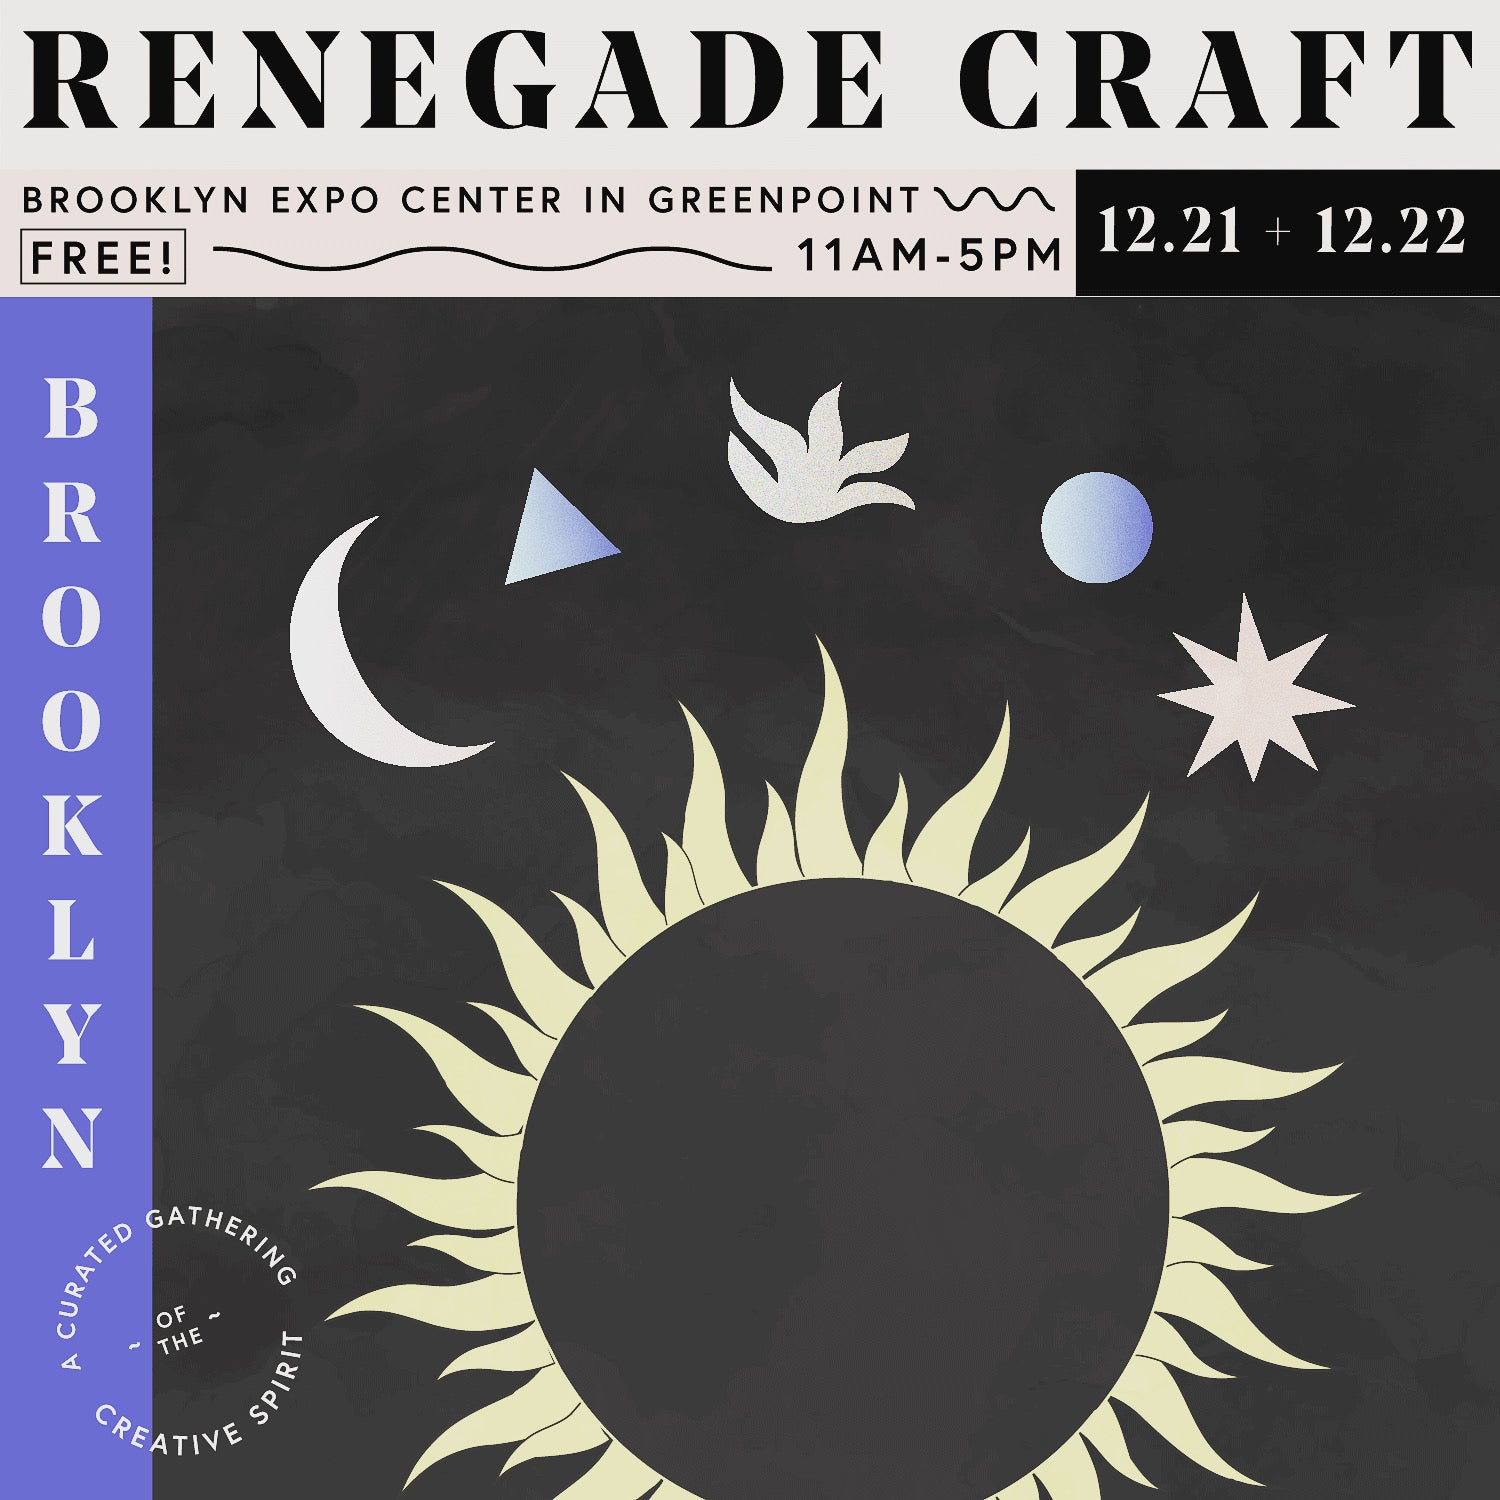 We will be at Renegade Craft Brooklyn Dec 21st and Dec 22nd